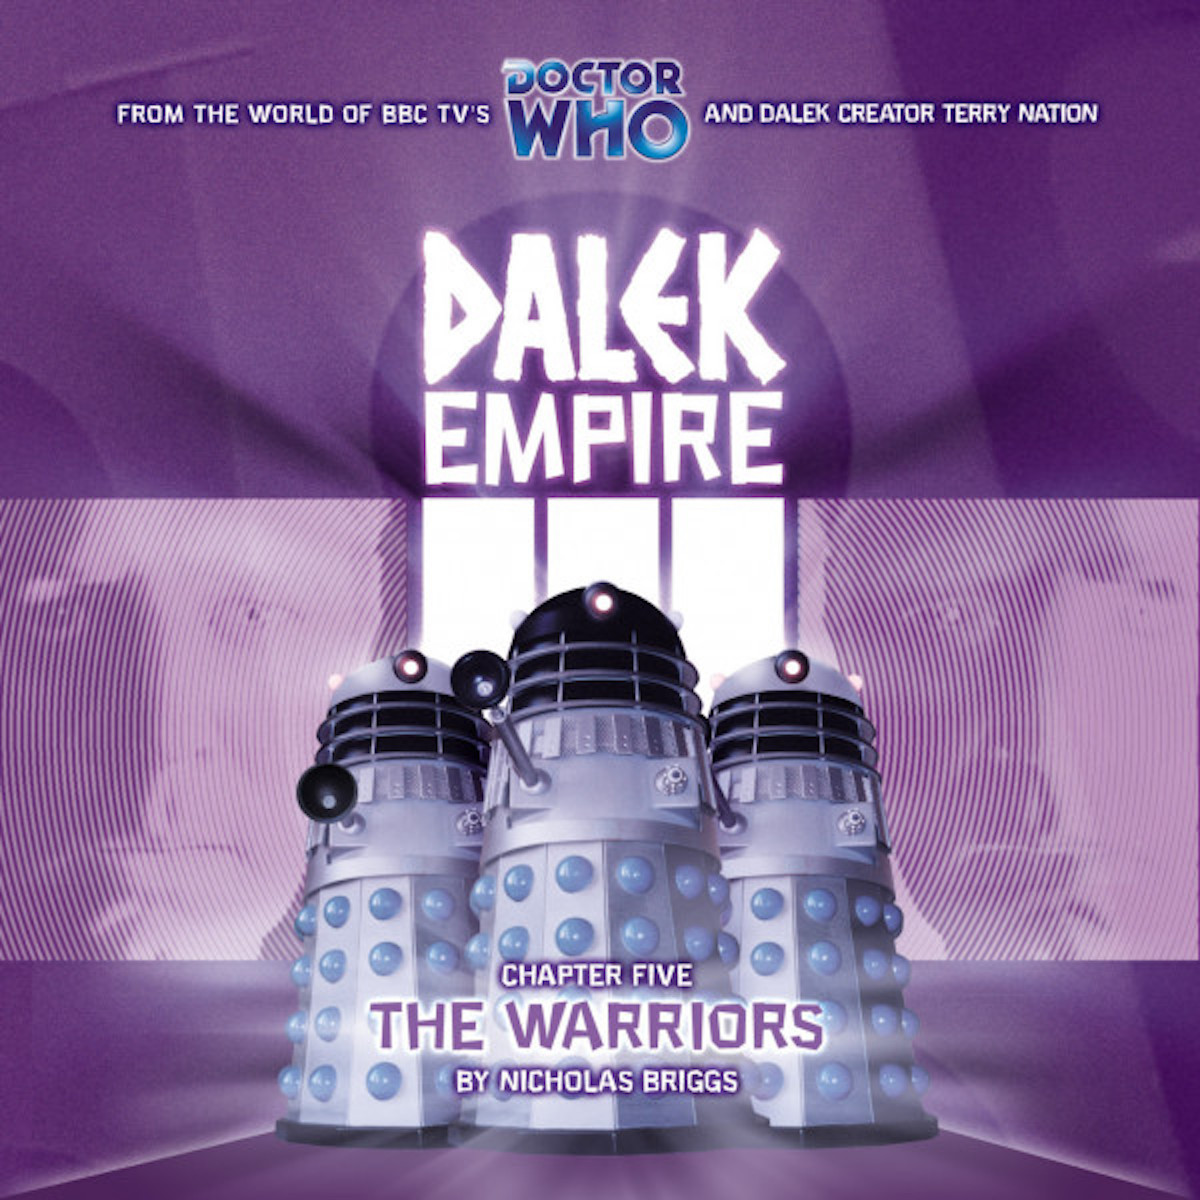 Dalek Empire The Warriors